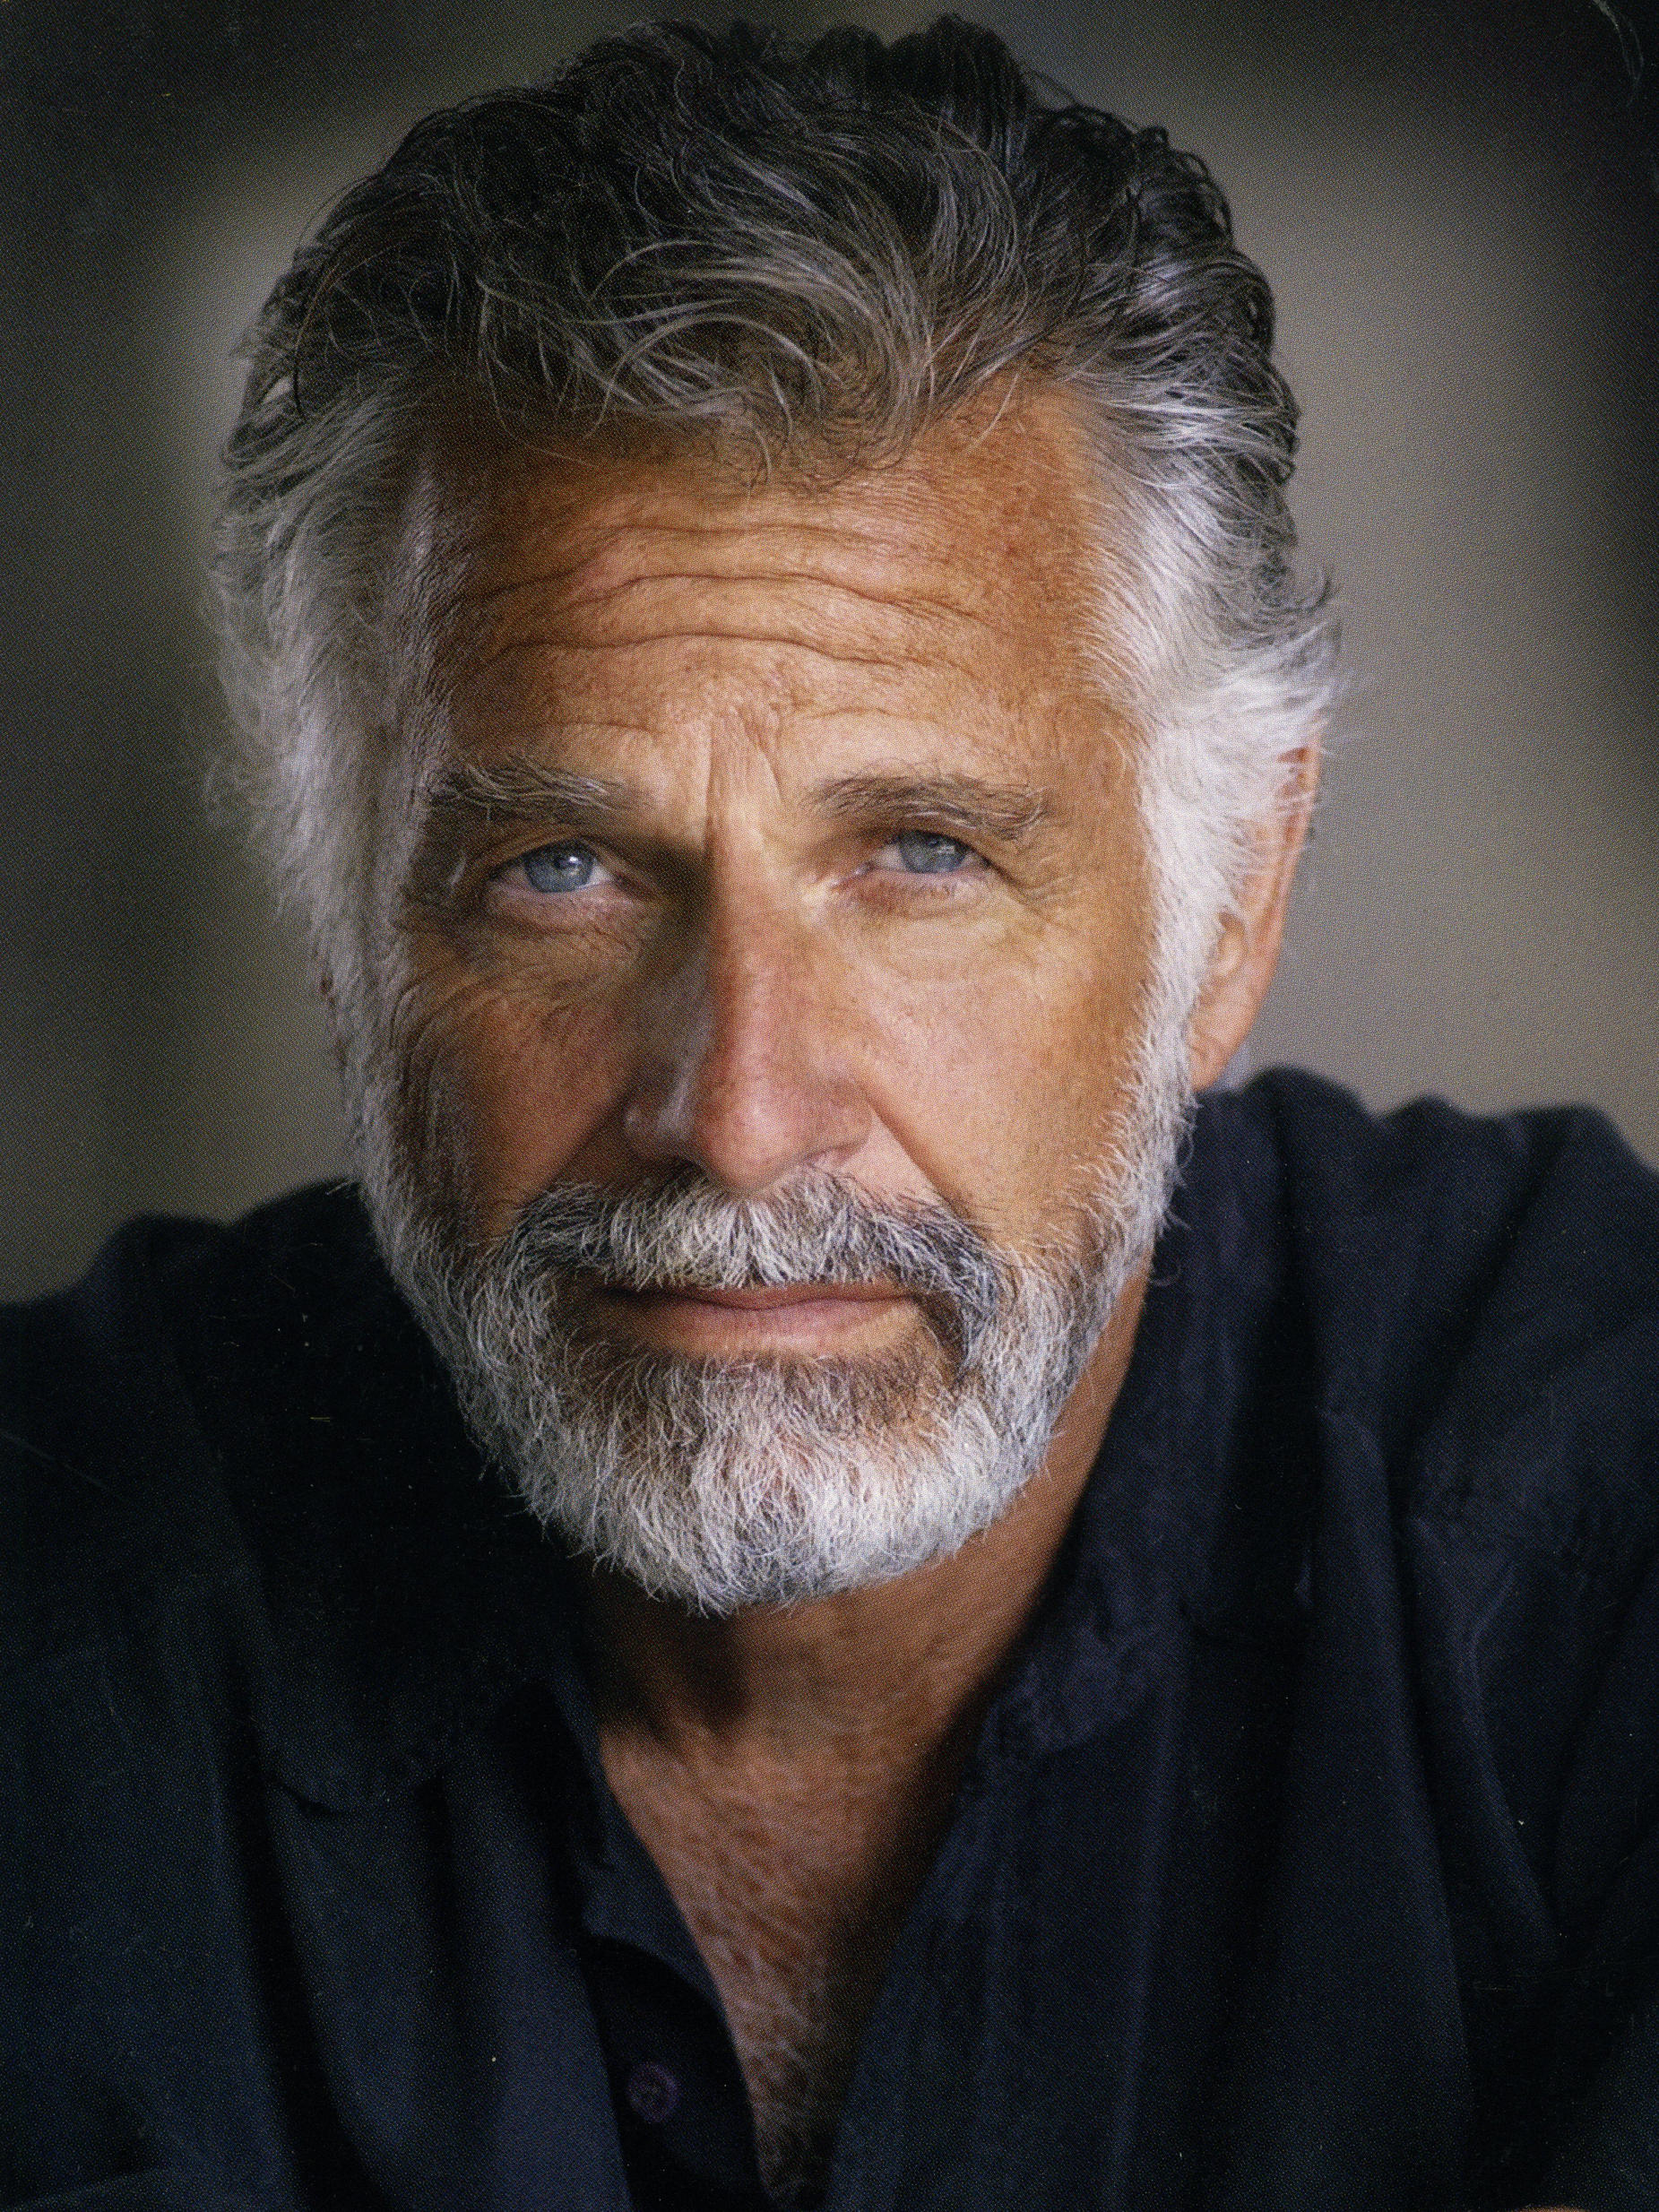 meet the most interesting man in the world knkx